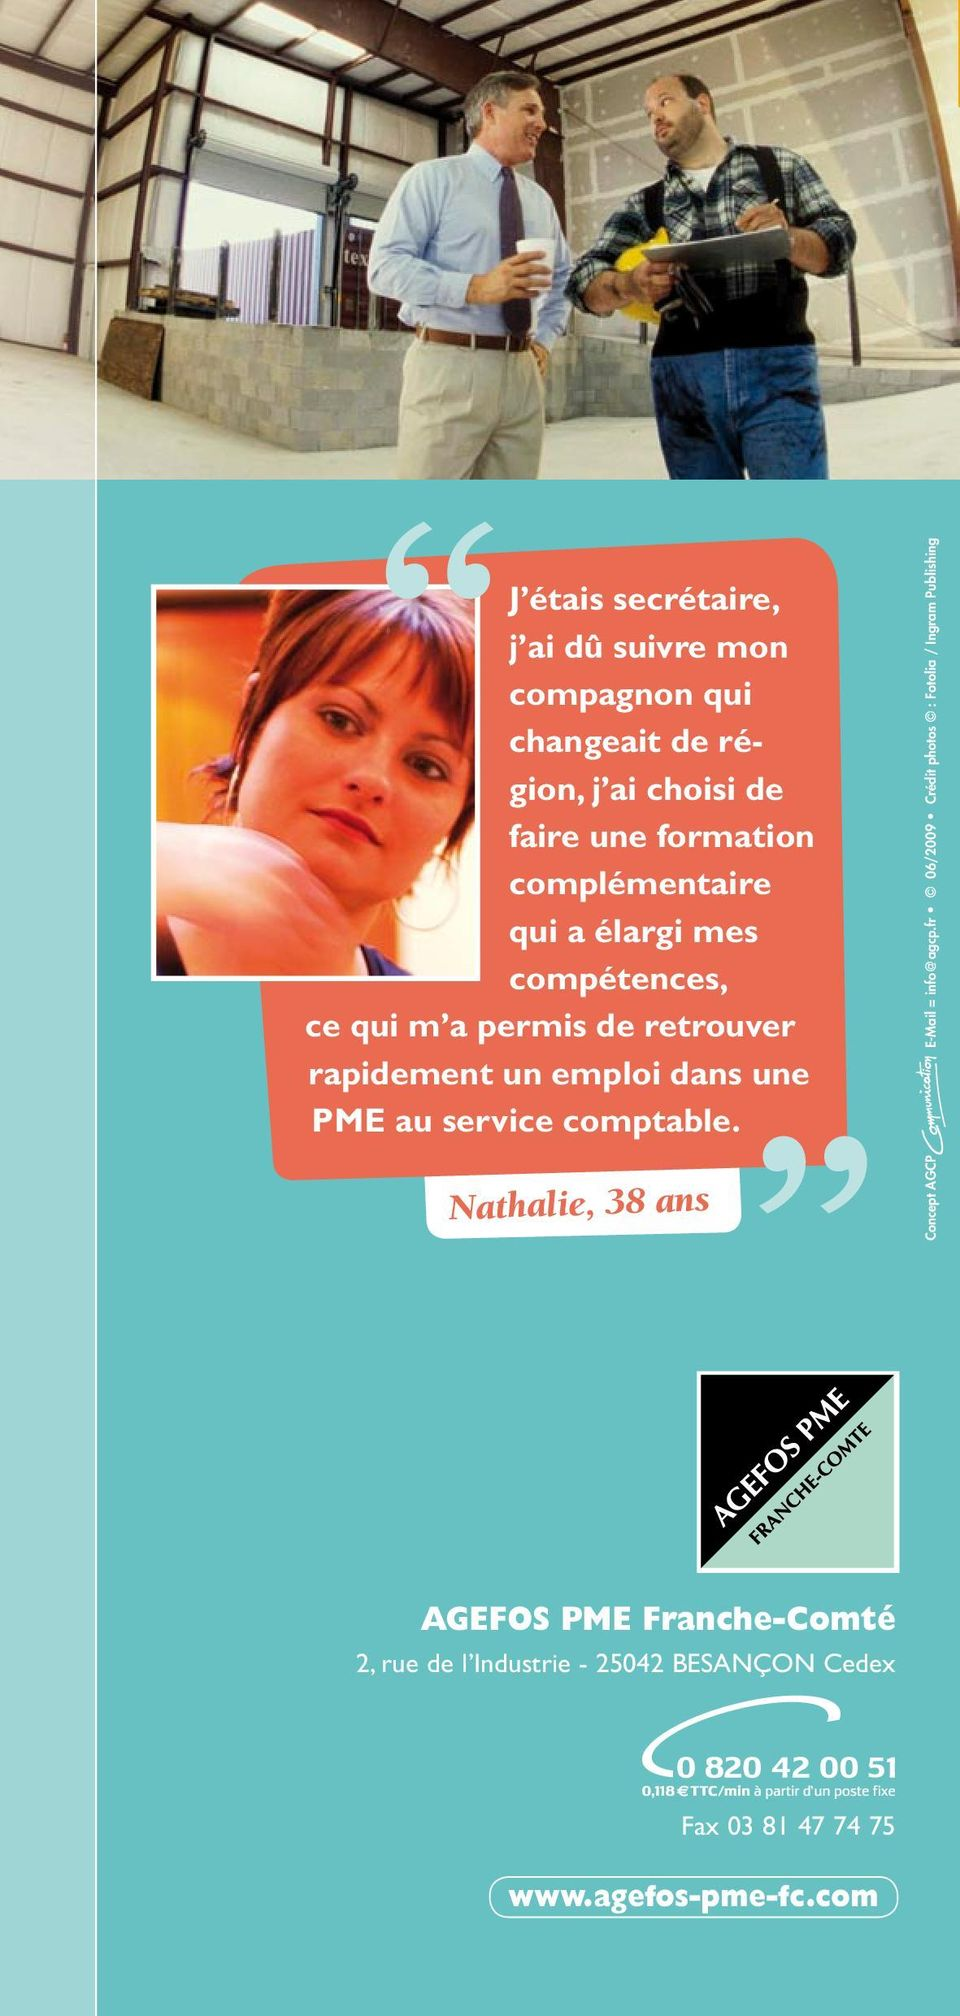 service cmptable. Nathalie, 38 ans Cncept AGCP E-Mail = inf@agcp.